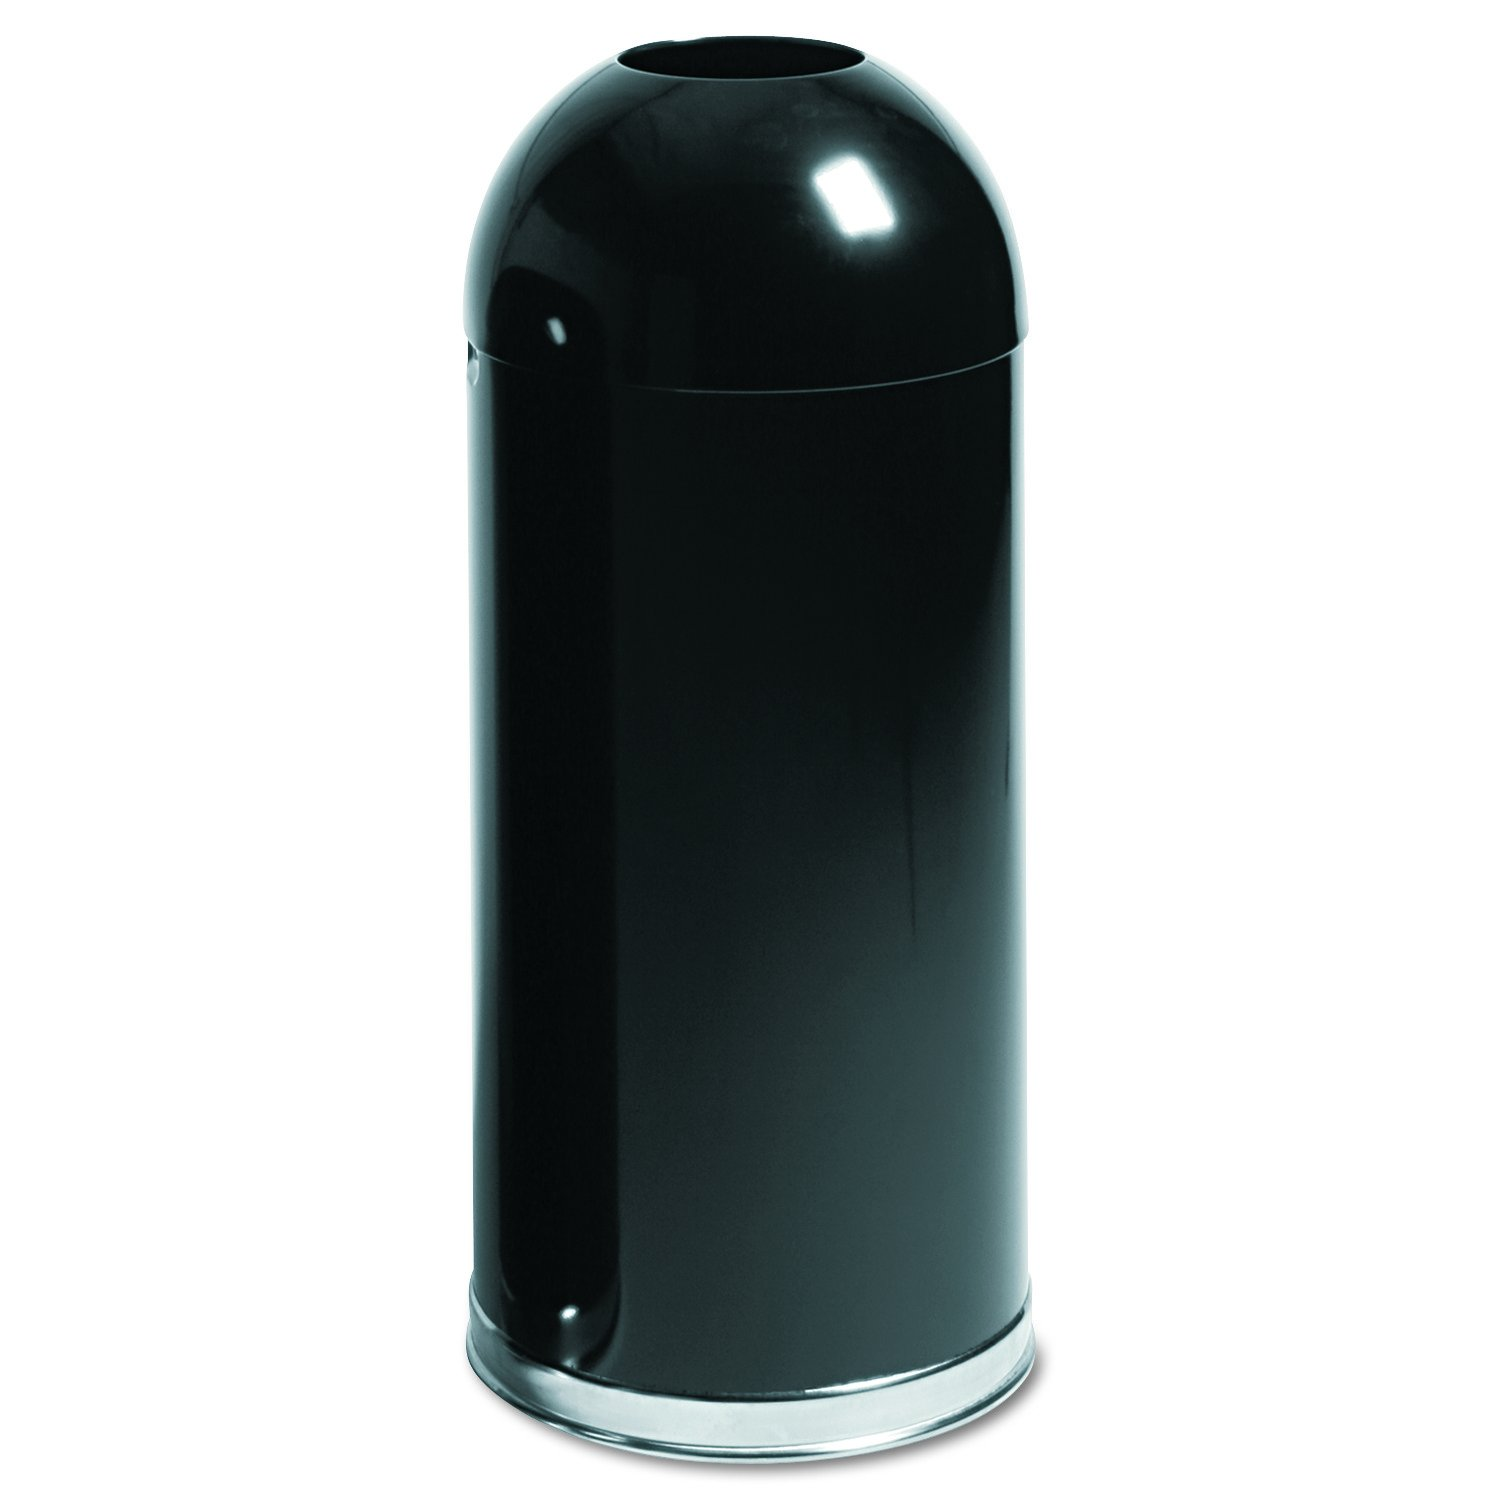 Rubbermaid Commercial Round Top Trash Can, 15 Gallon, Black, FGR1536EOTGLBK by Rubbermaid Commercial Products